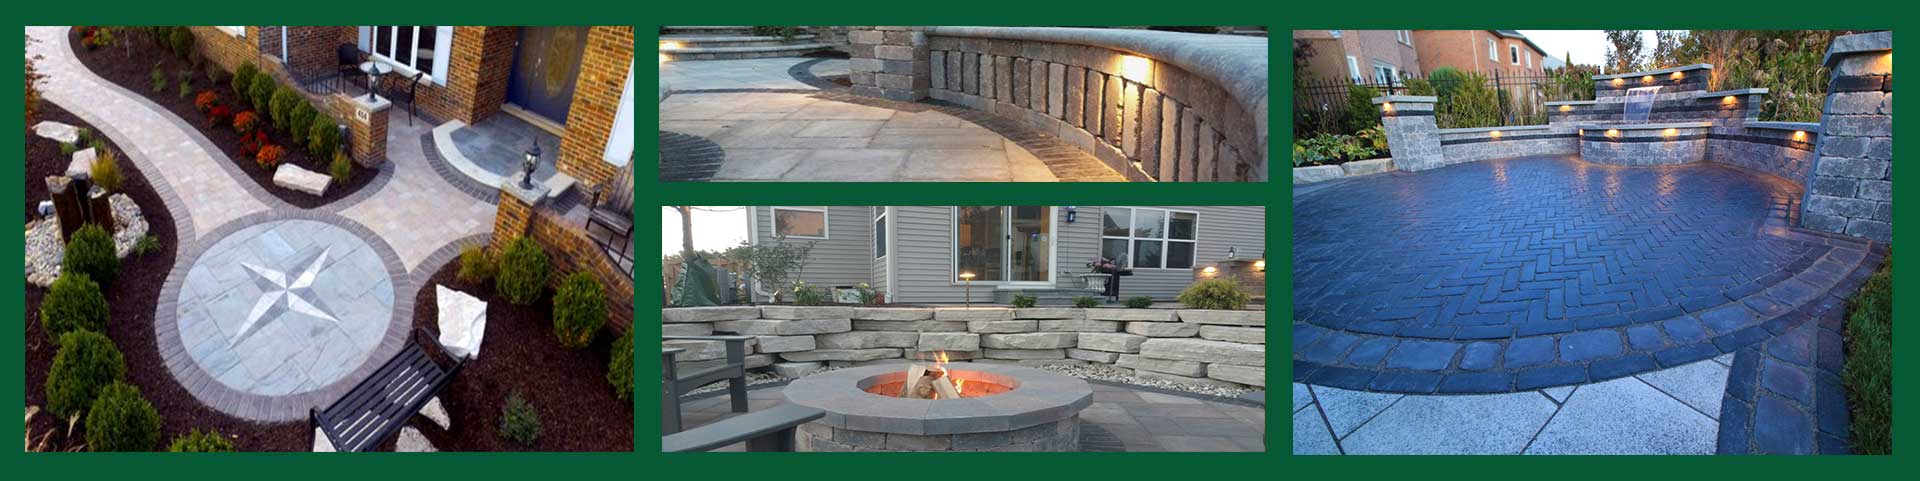 Landscape Architect 3d Landscape Design Kildeer Lake Zurich Il Blade Runners Services Llc